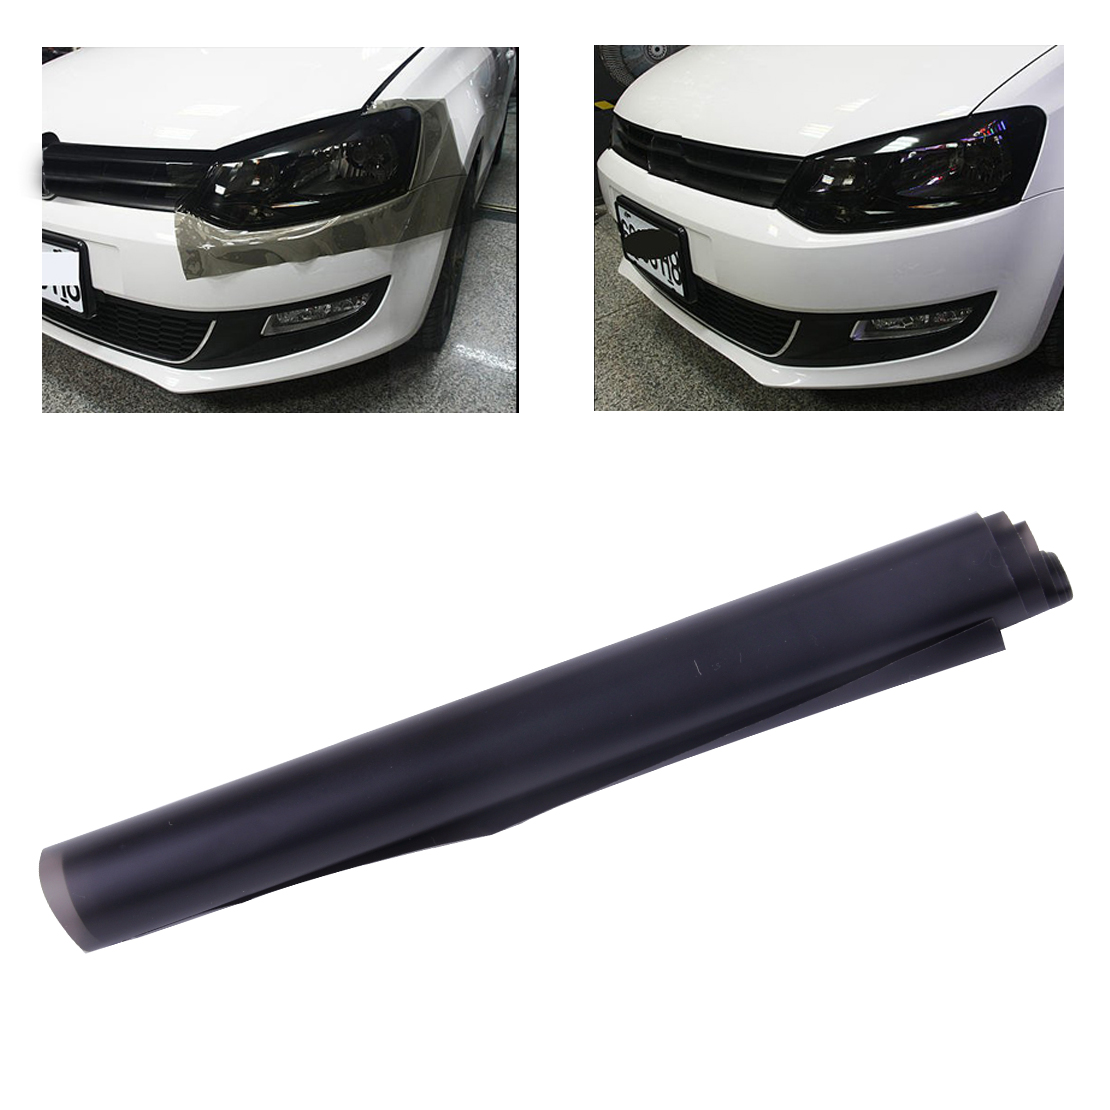 CITALL 30x100CM Matt Black Tail Light Film Tint Taillight Headlight Rear Lamp Smoked Tinting Film Matt Smoke Film Cover Decal